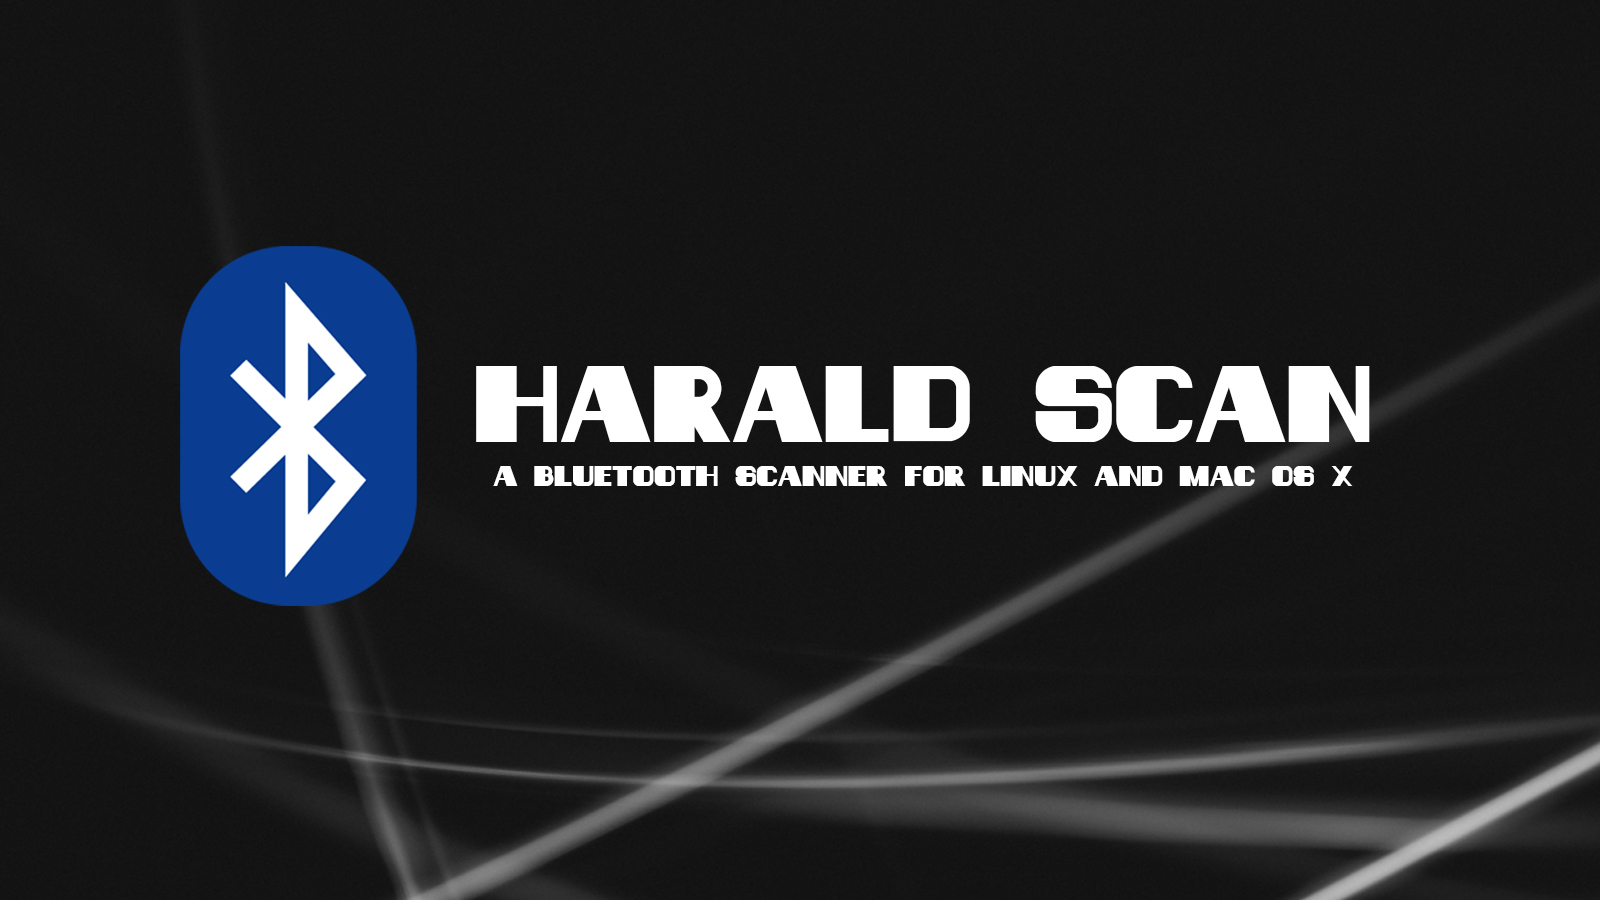 Harald Scan - Bluetooth Discovery Scanning